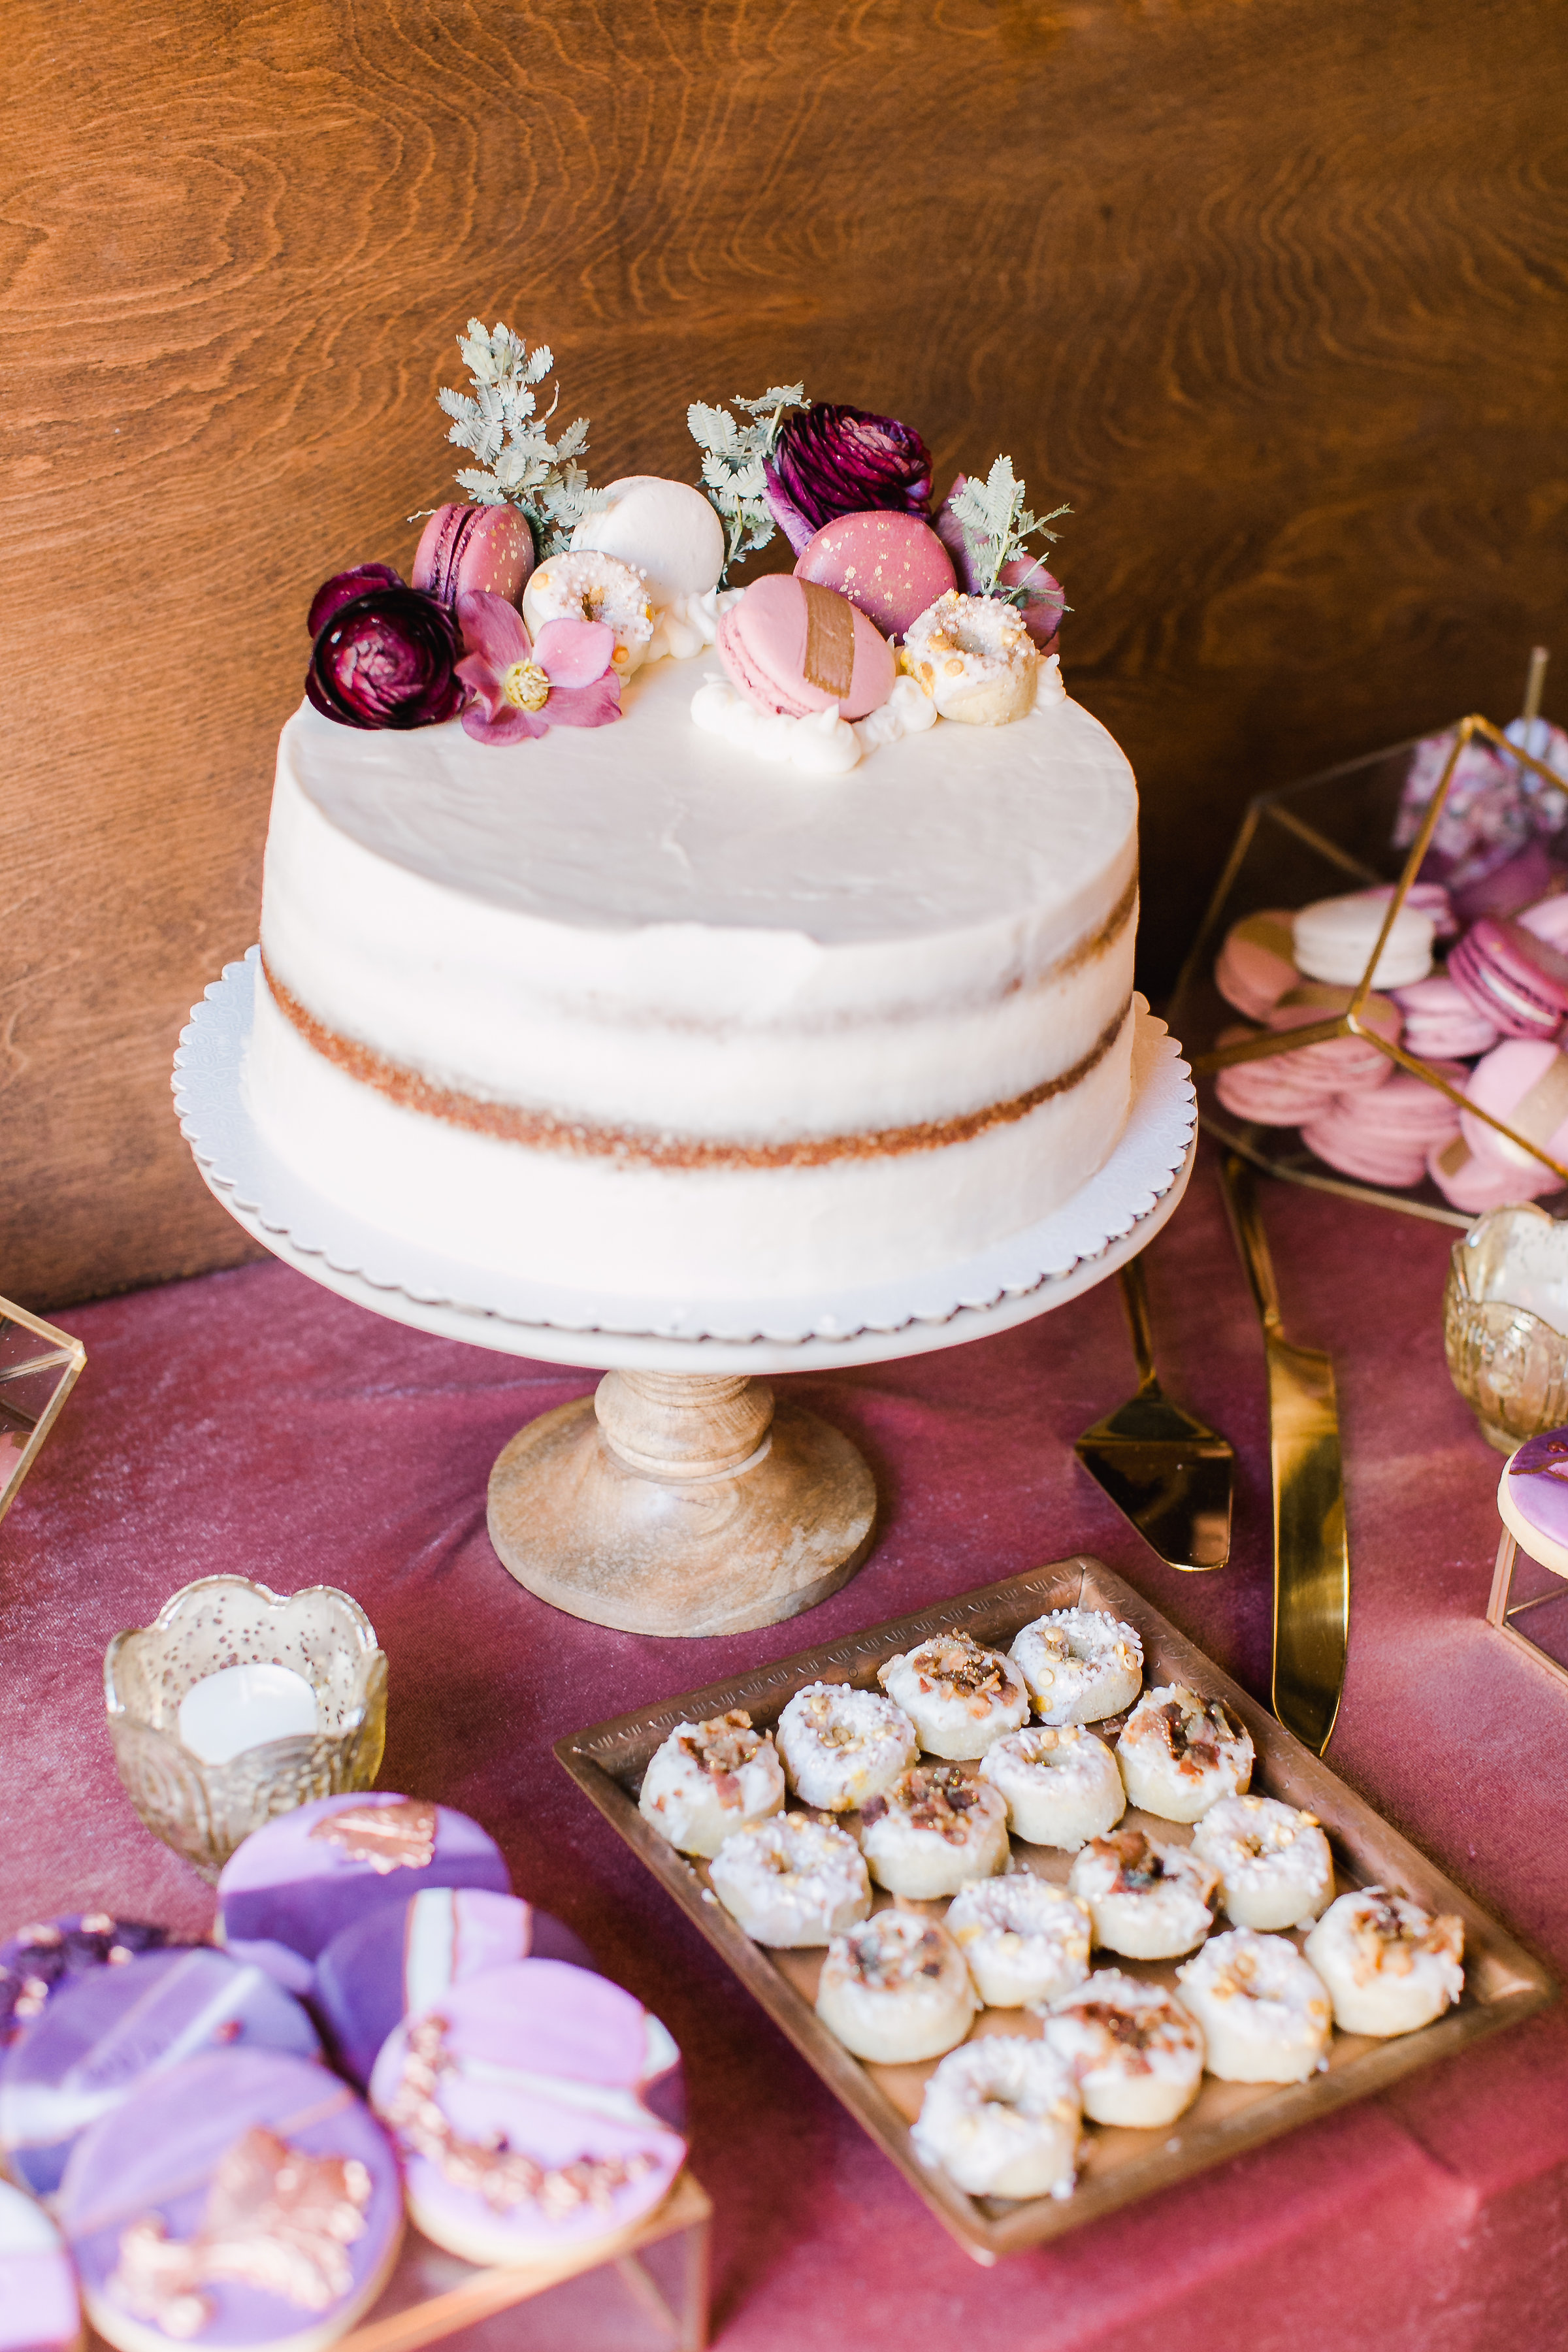 naked cake topped with macarons